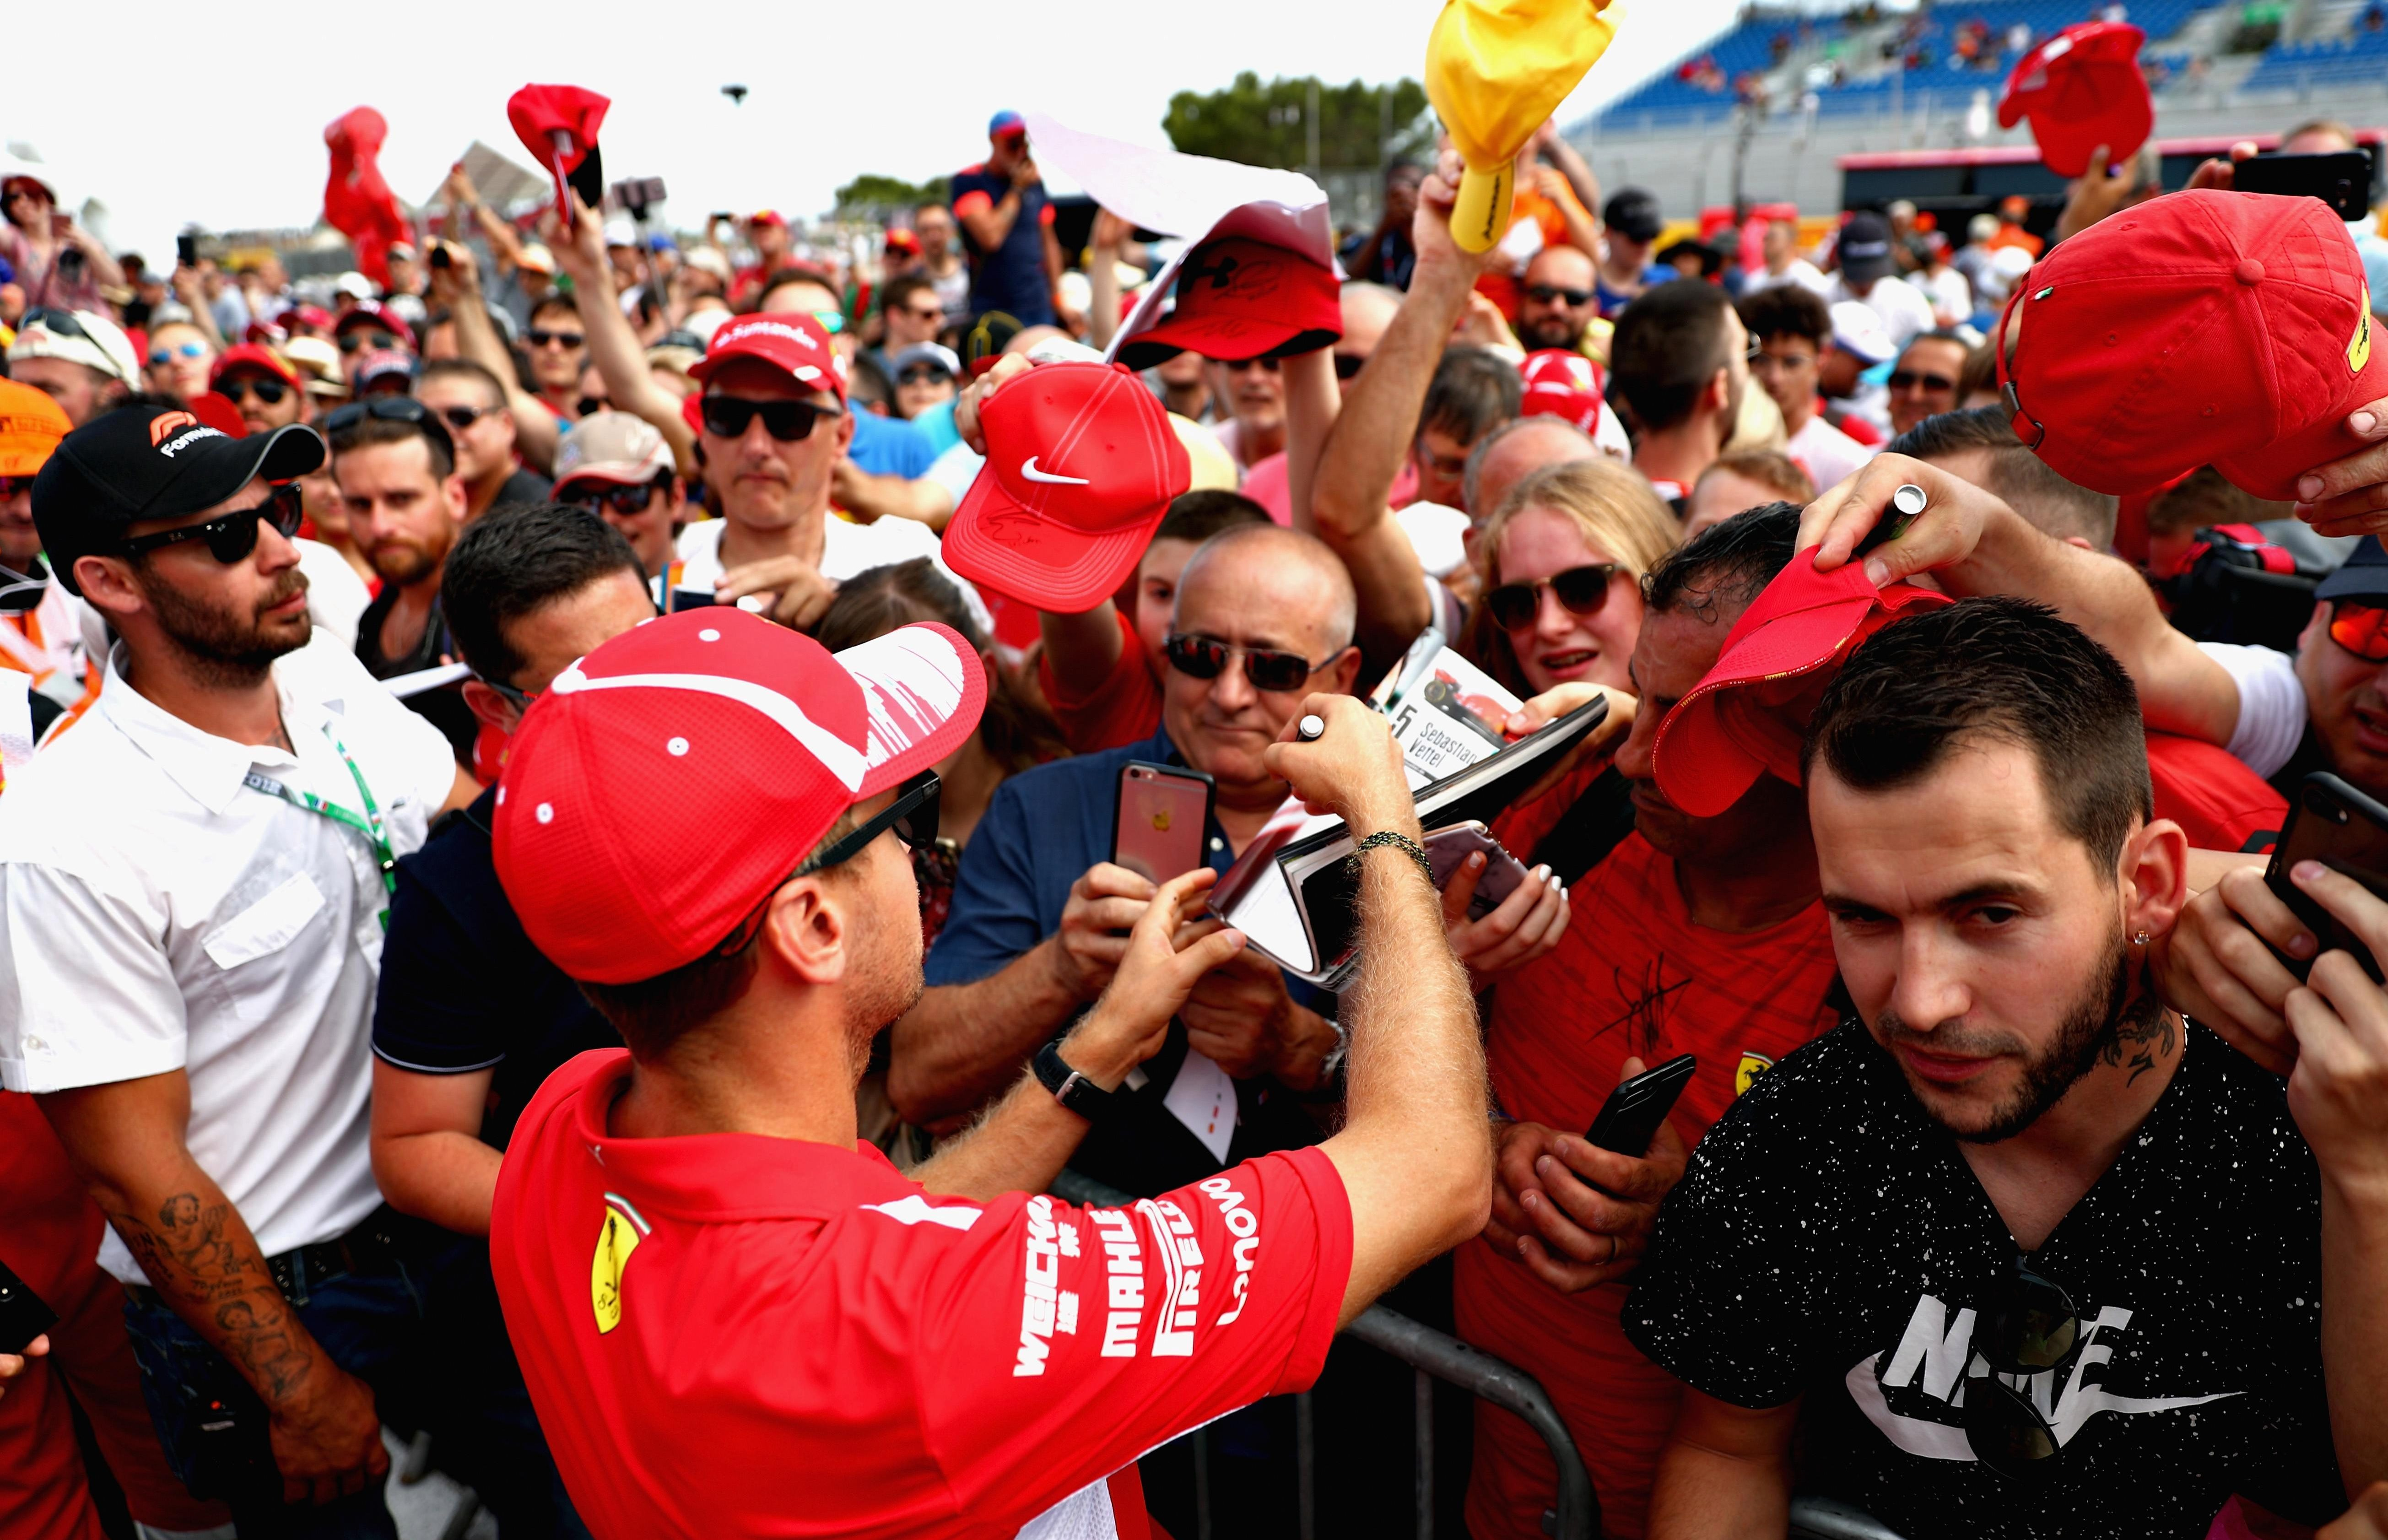 Formula One fans have blasted the French GP after huge tailbacks on way to course